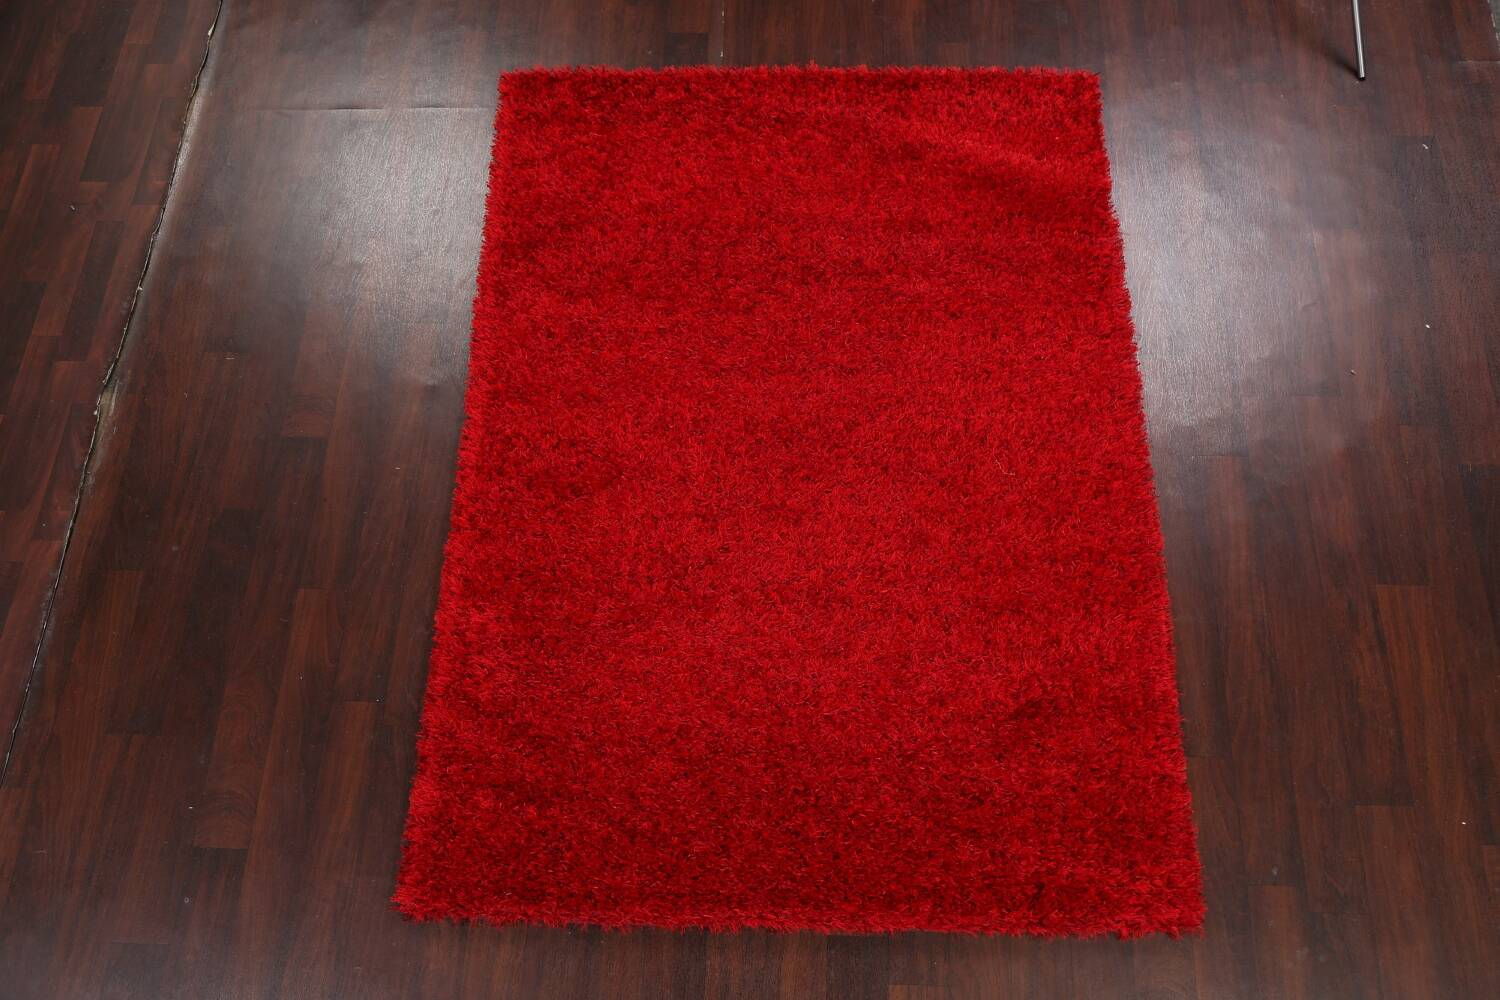 Red Plush Shaggy Area Rug 5x7 image 2